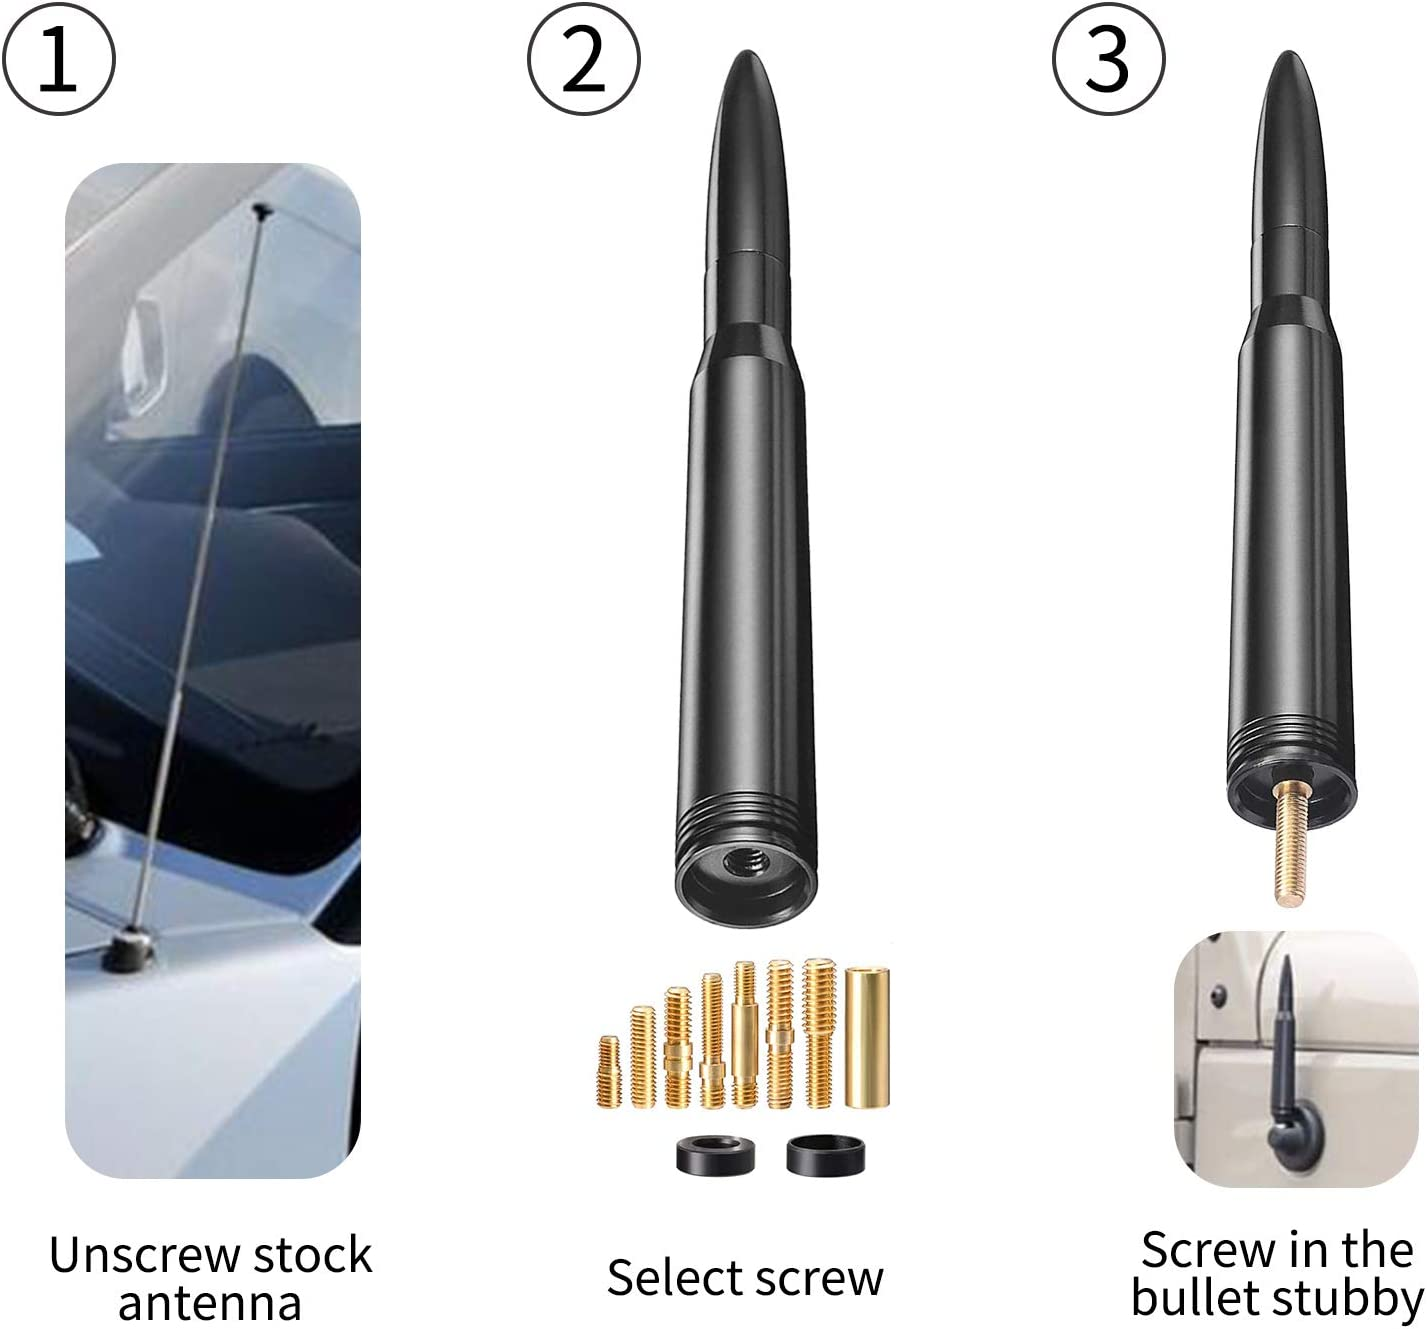 Vehicle Truck Bullet Antenna Universal Car Antenna Replacement Radio Antenna for Dodge RAM 1500 2500 3500 Ford F150 F250 F350 Super Duty Raptor